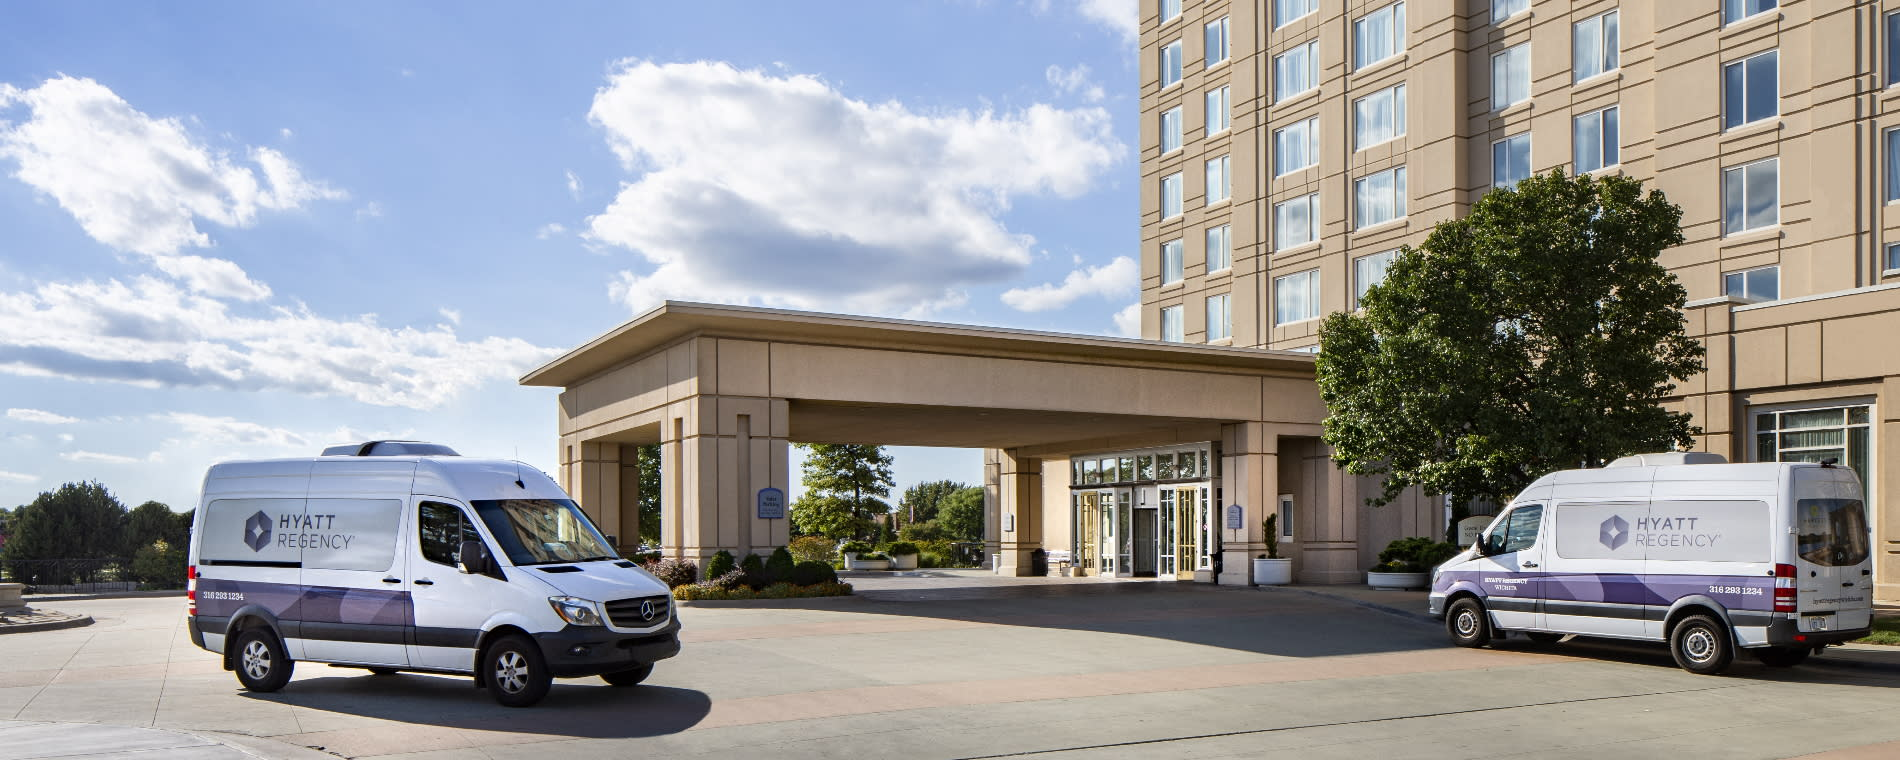 Hyatt Regency Wichita Exterior Shuttle